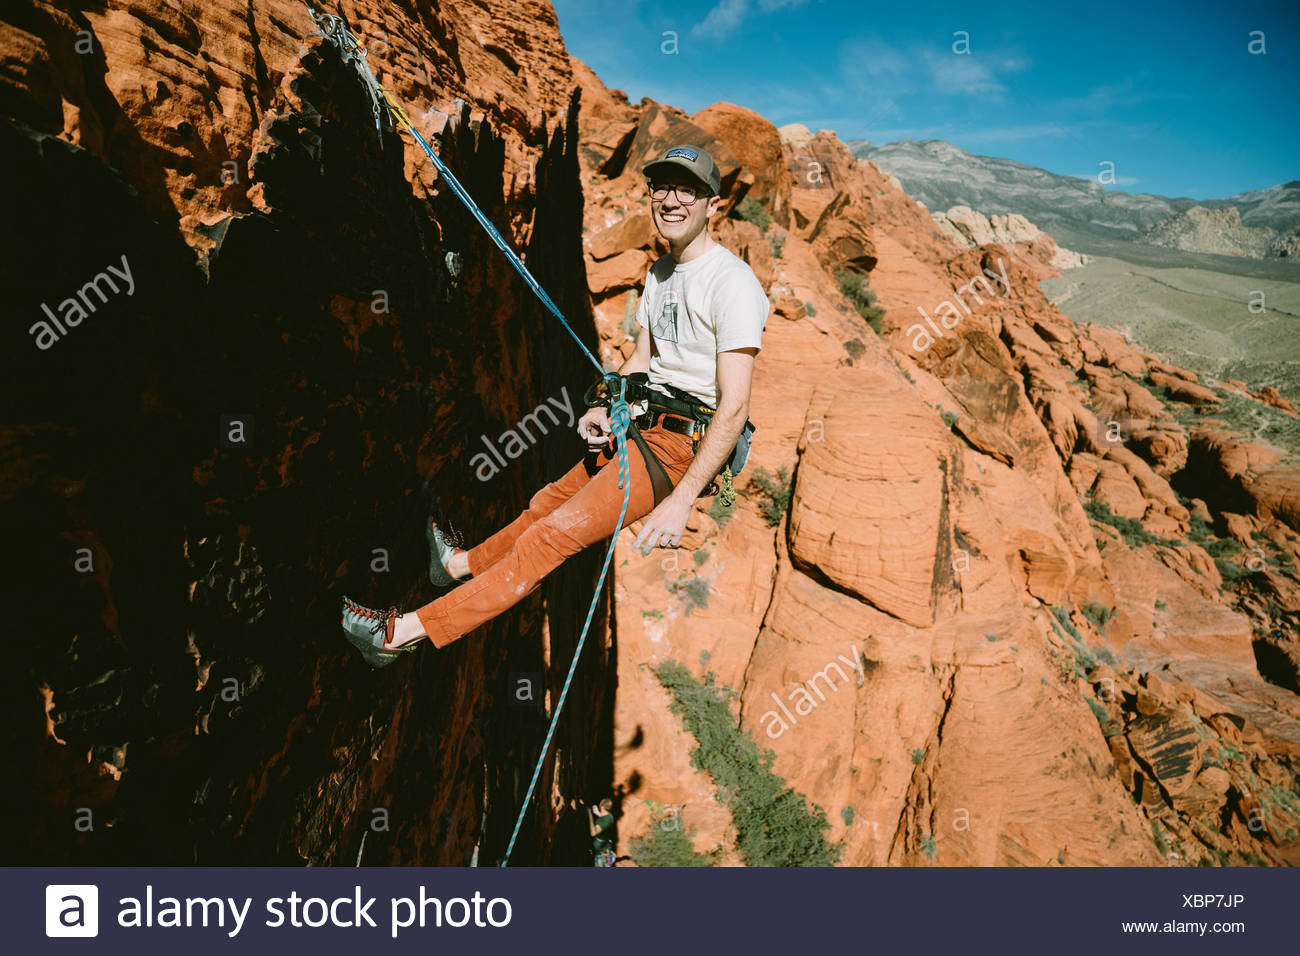 A climber on Panty Wall in Red Rock Canyon, Nevada Stock Photo